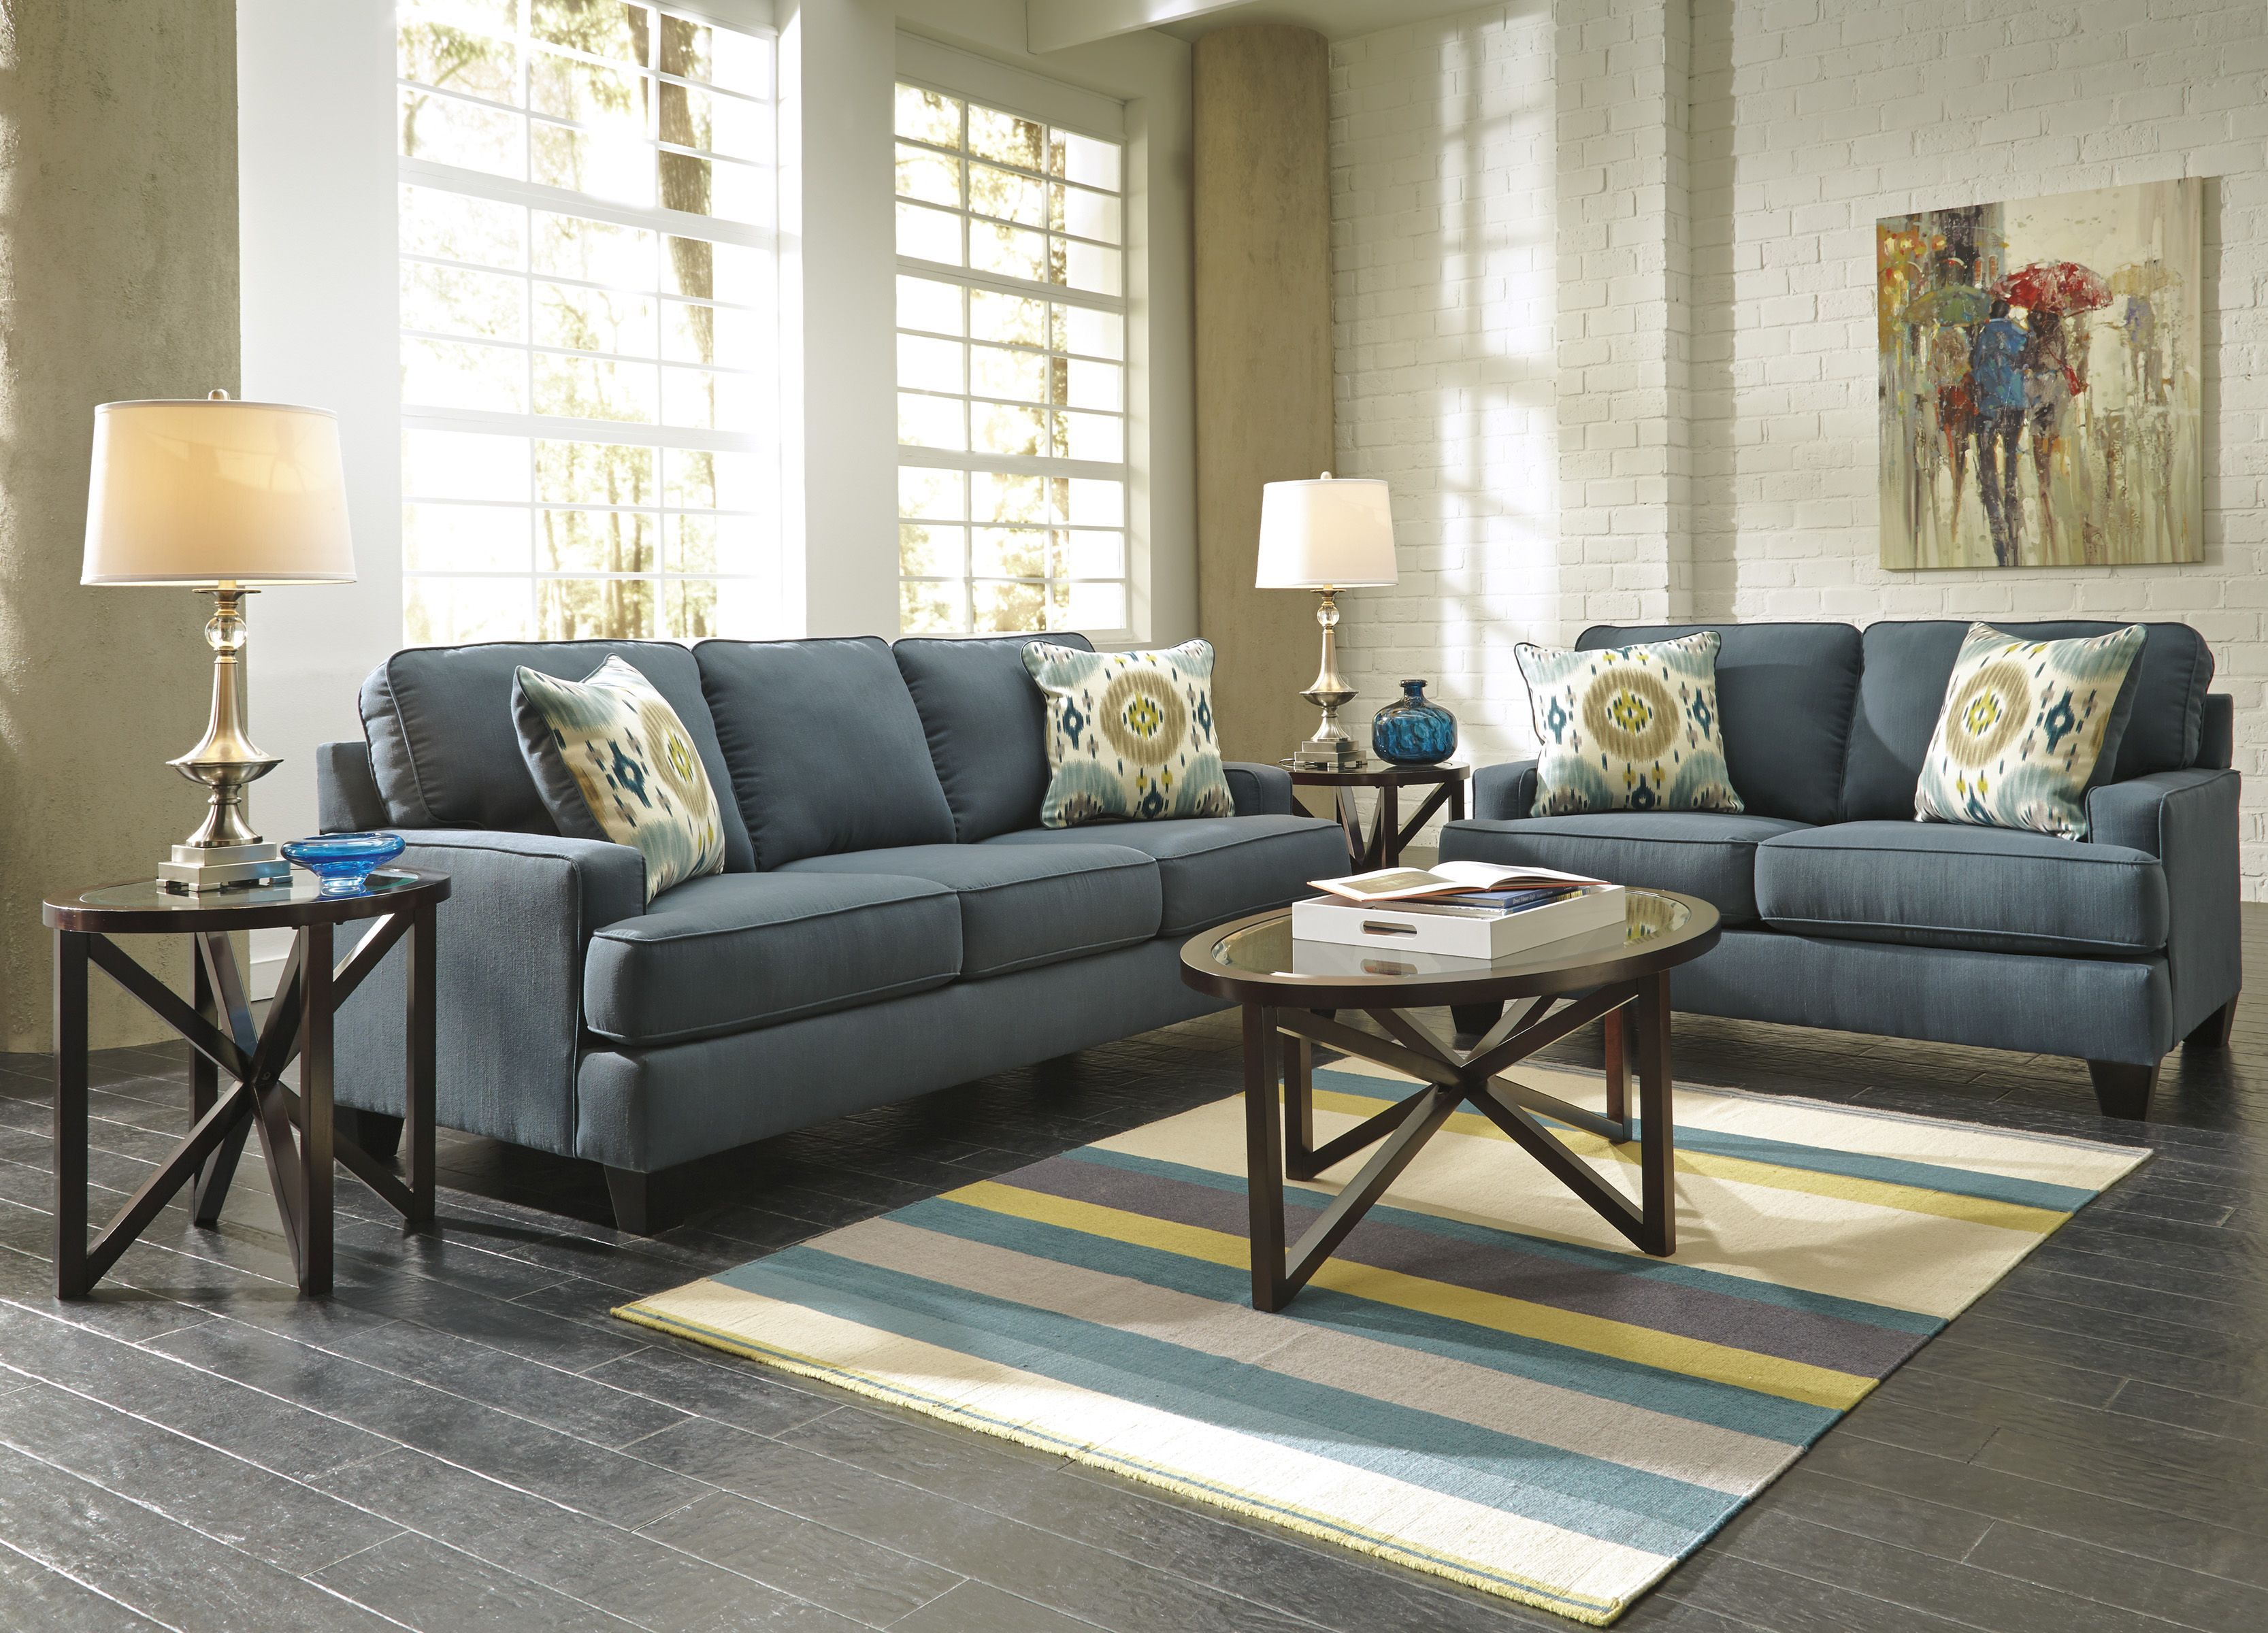 Rent A Center Sofa Beds Furniture Sofa Bed Furniture Living